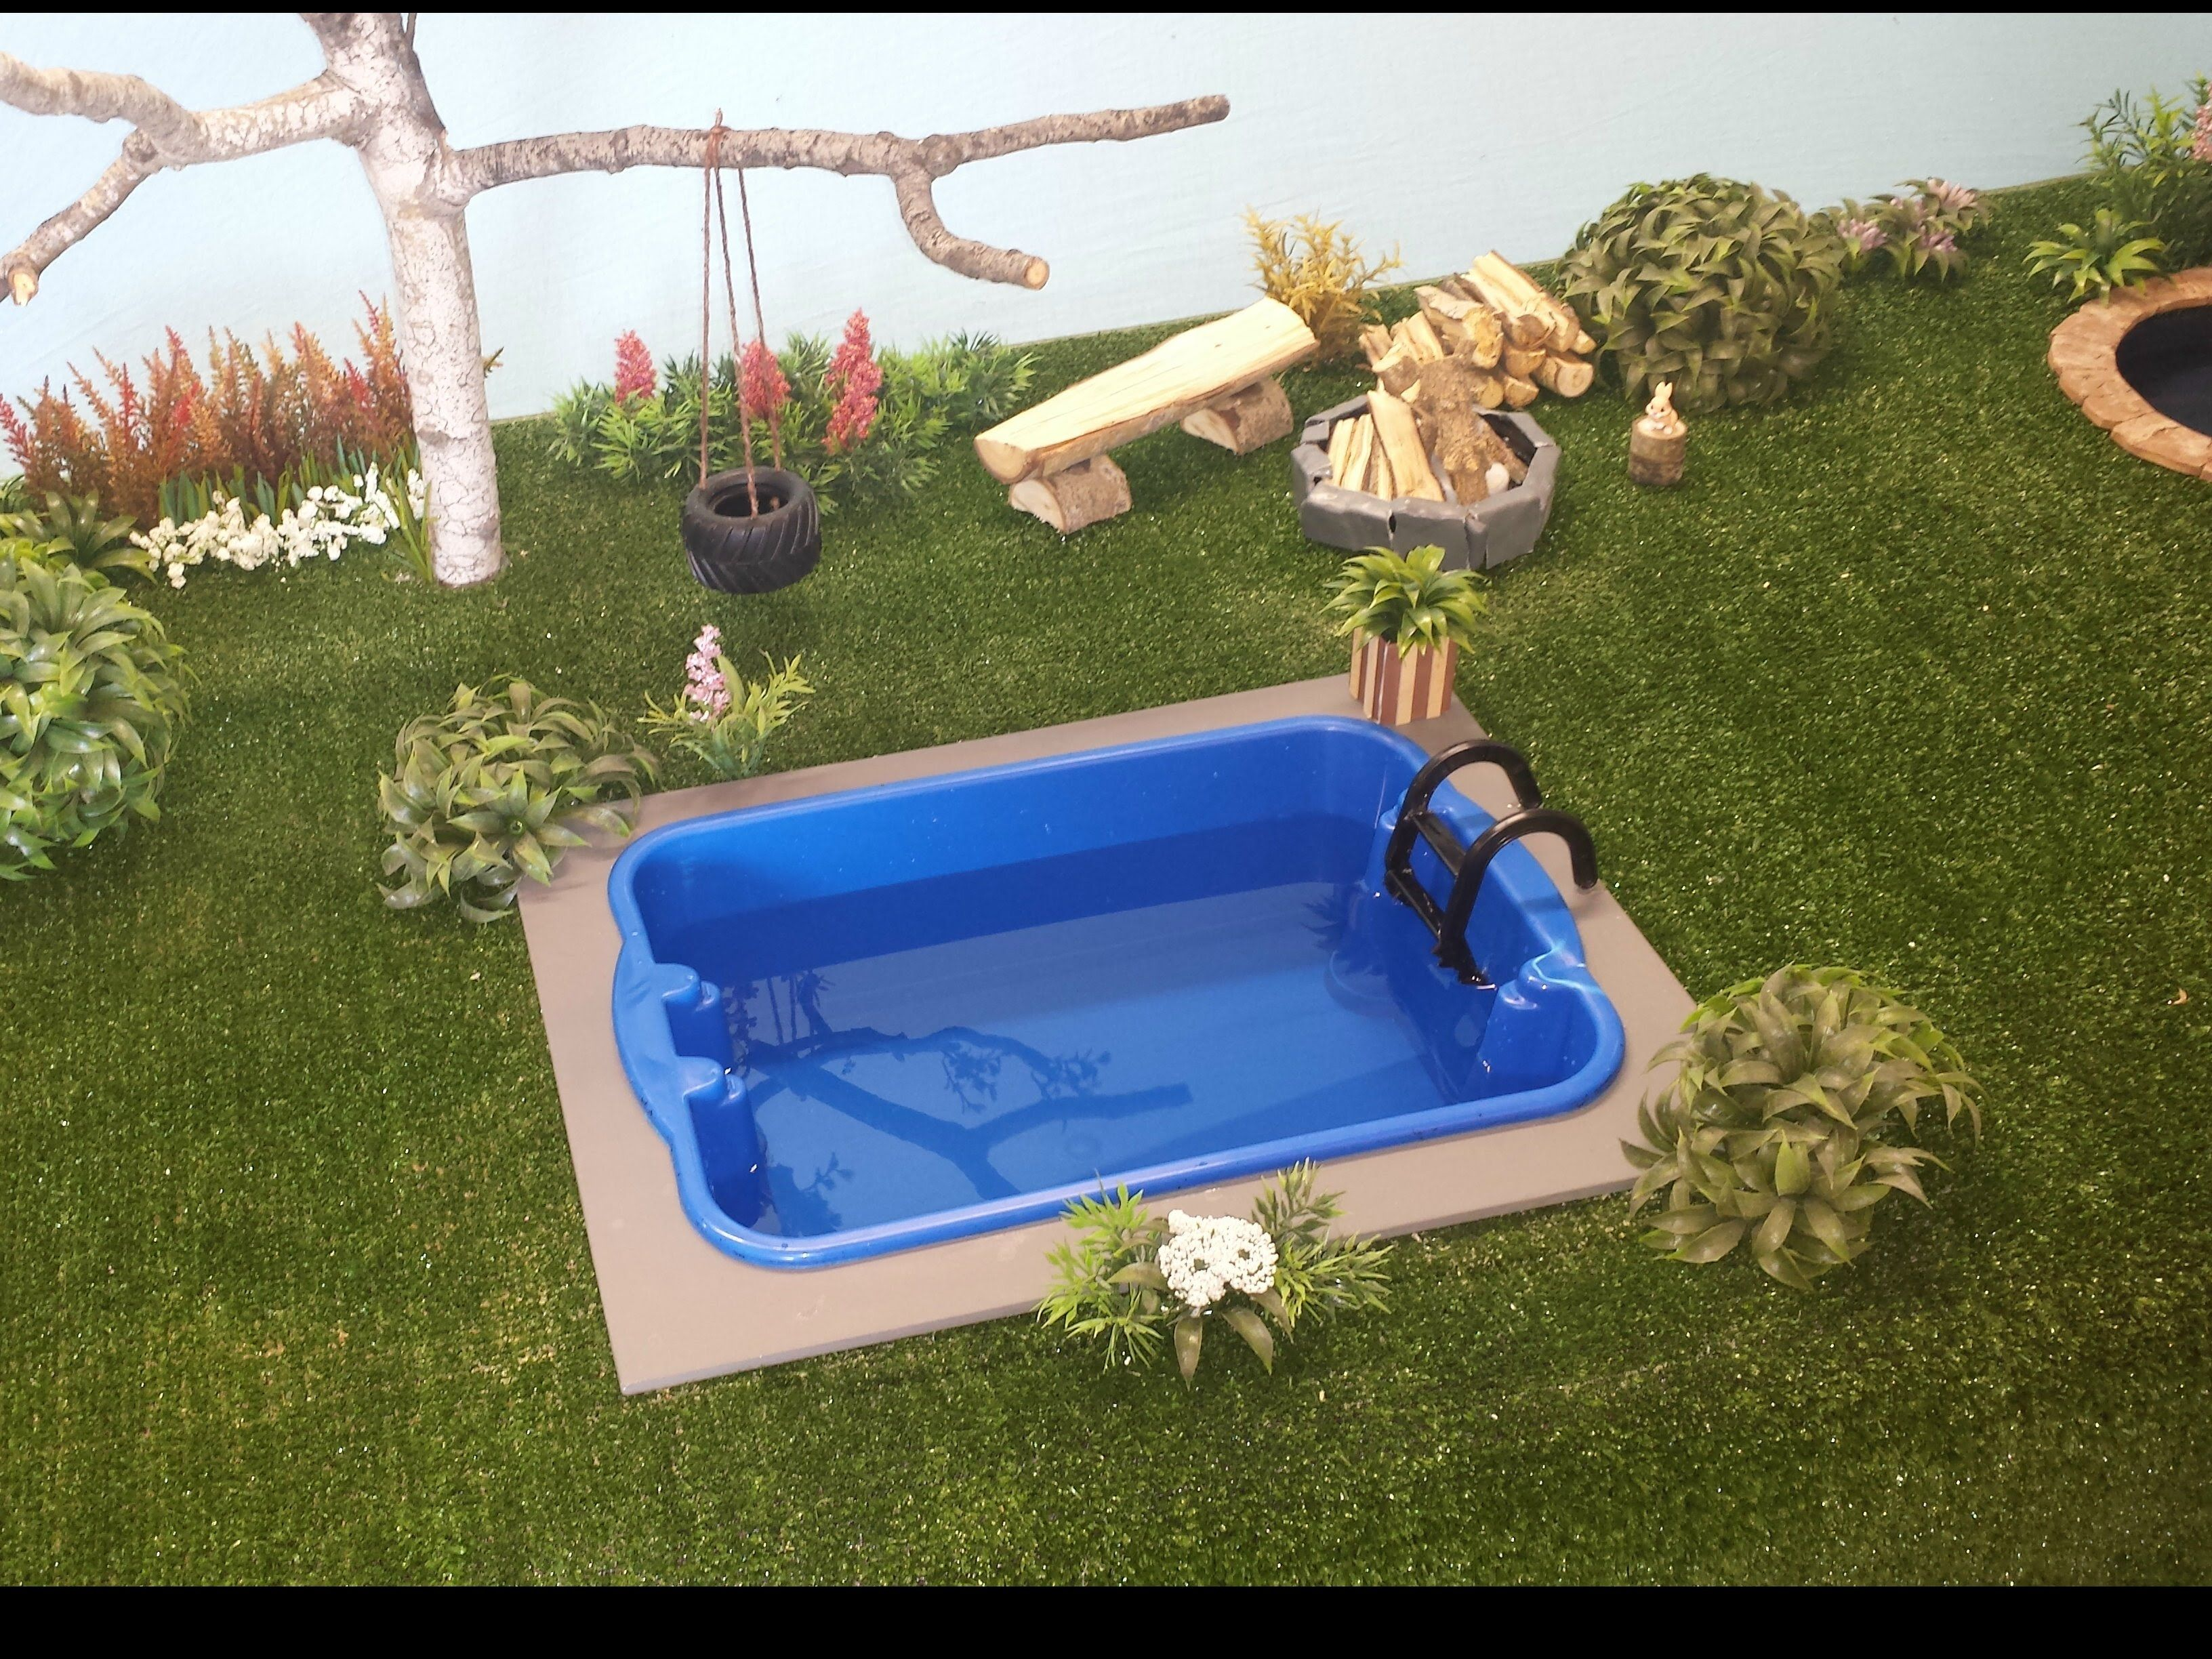 How To Make A Doll Backyard Pool Fashion Dolls Doll Houses Rooms Dioramas Pinterest